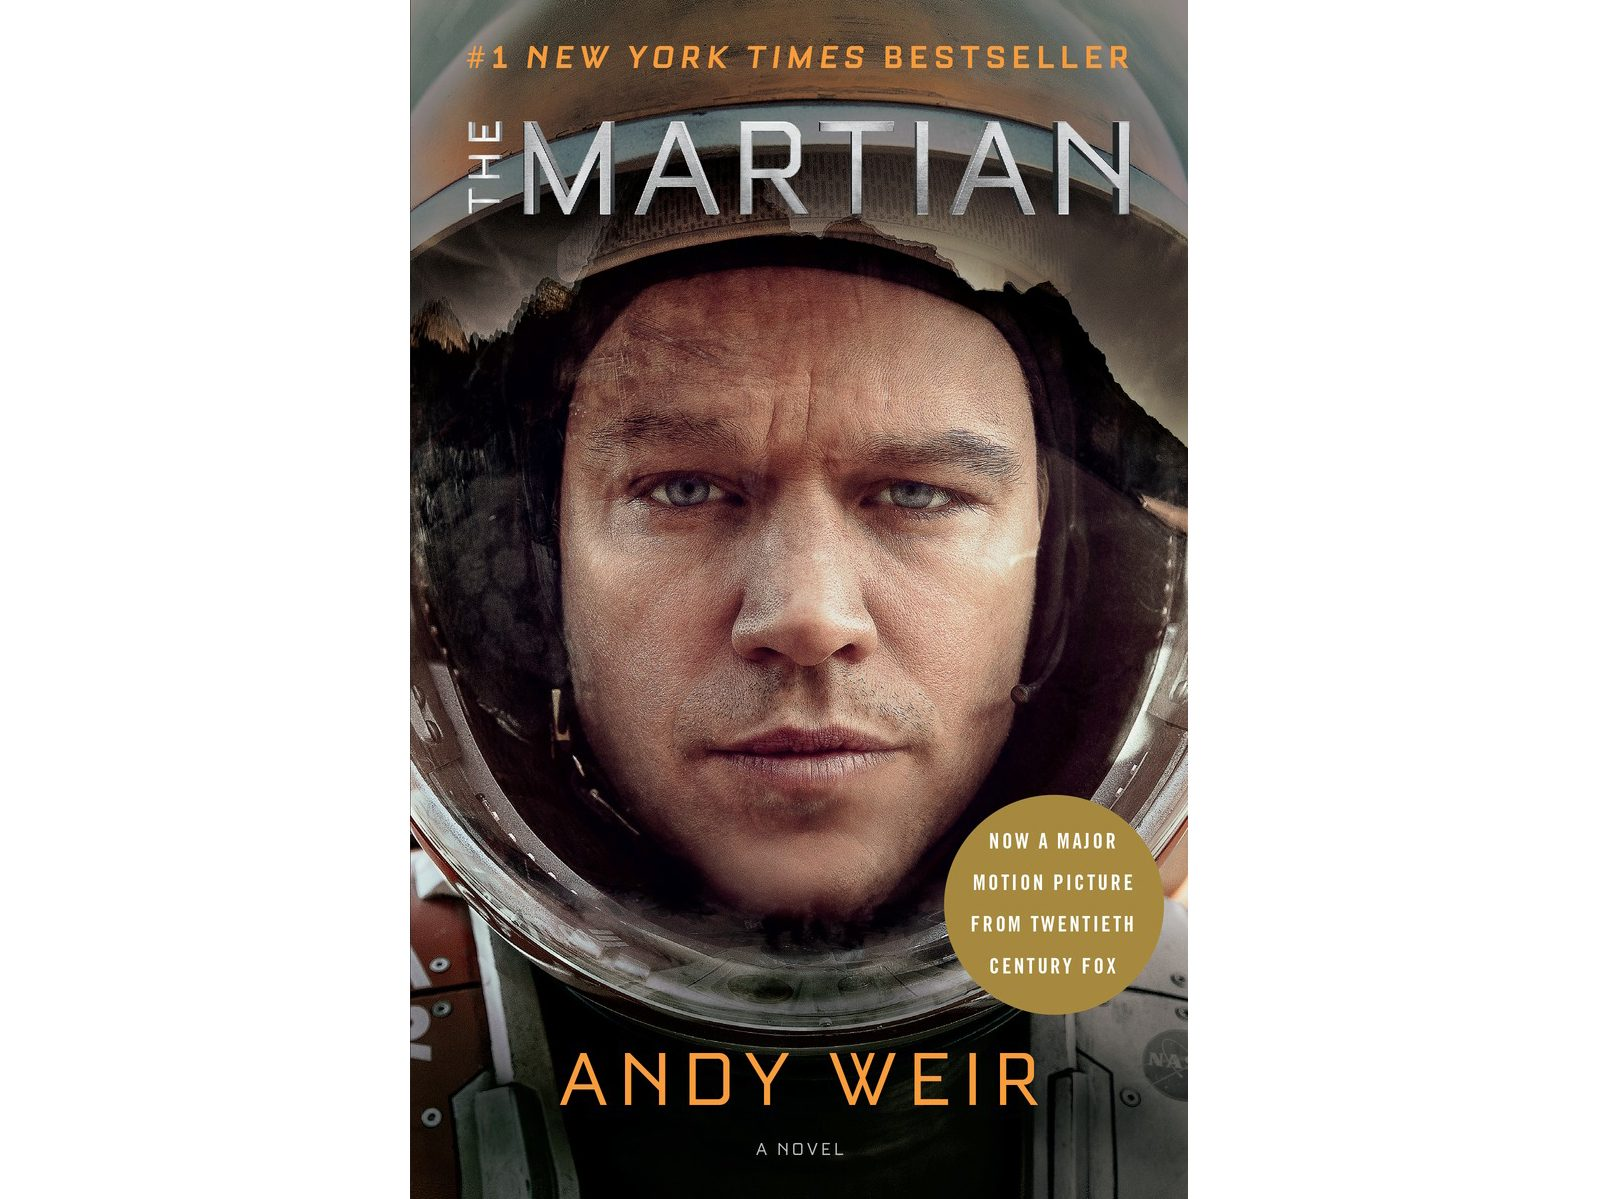 3. The Martian by Andy Weir